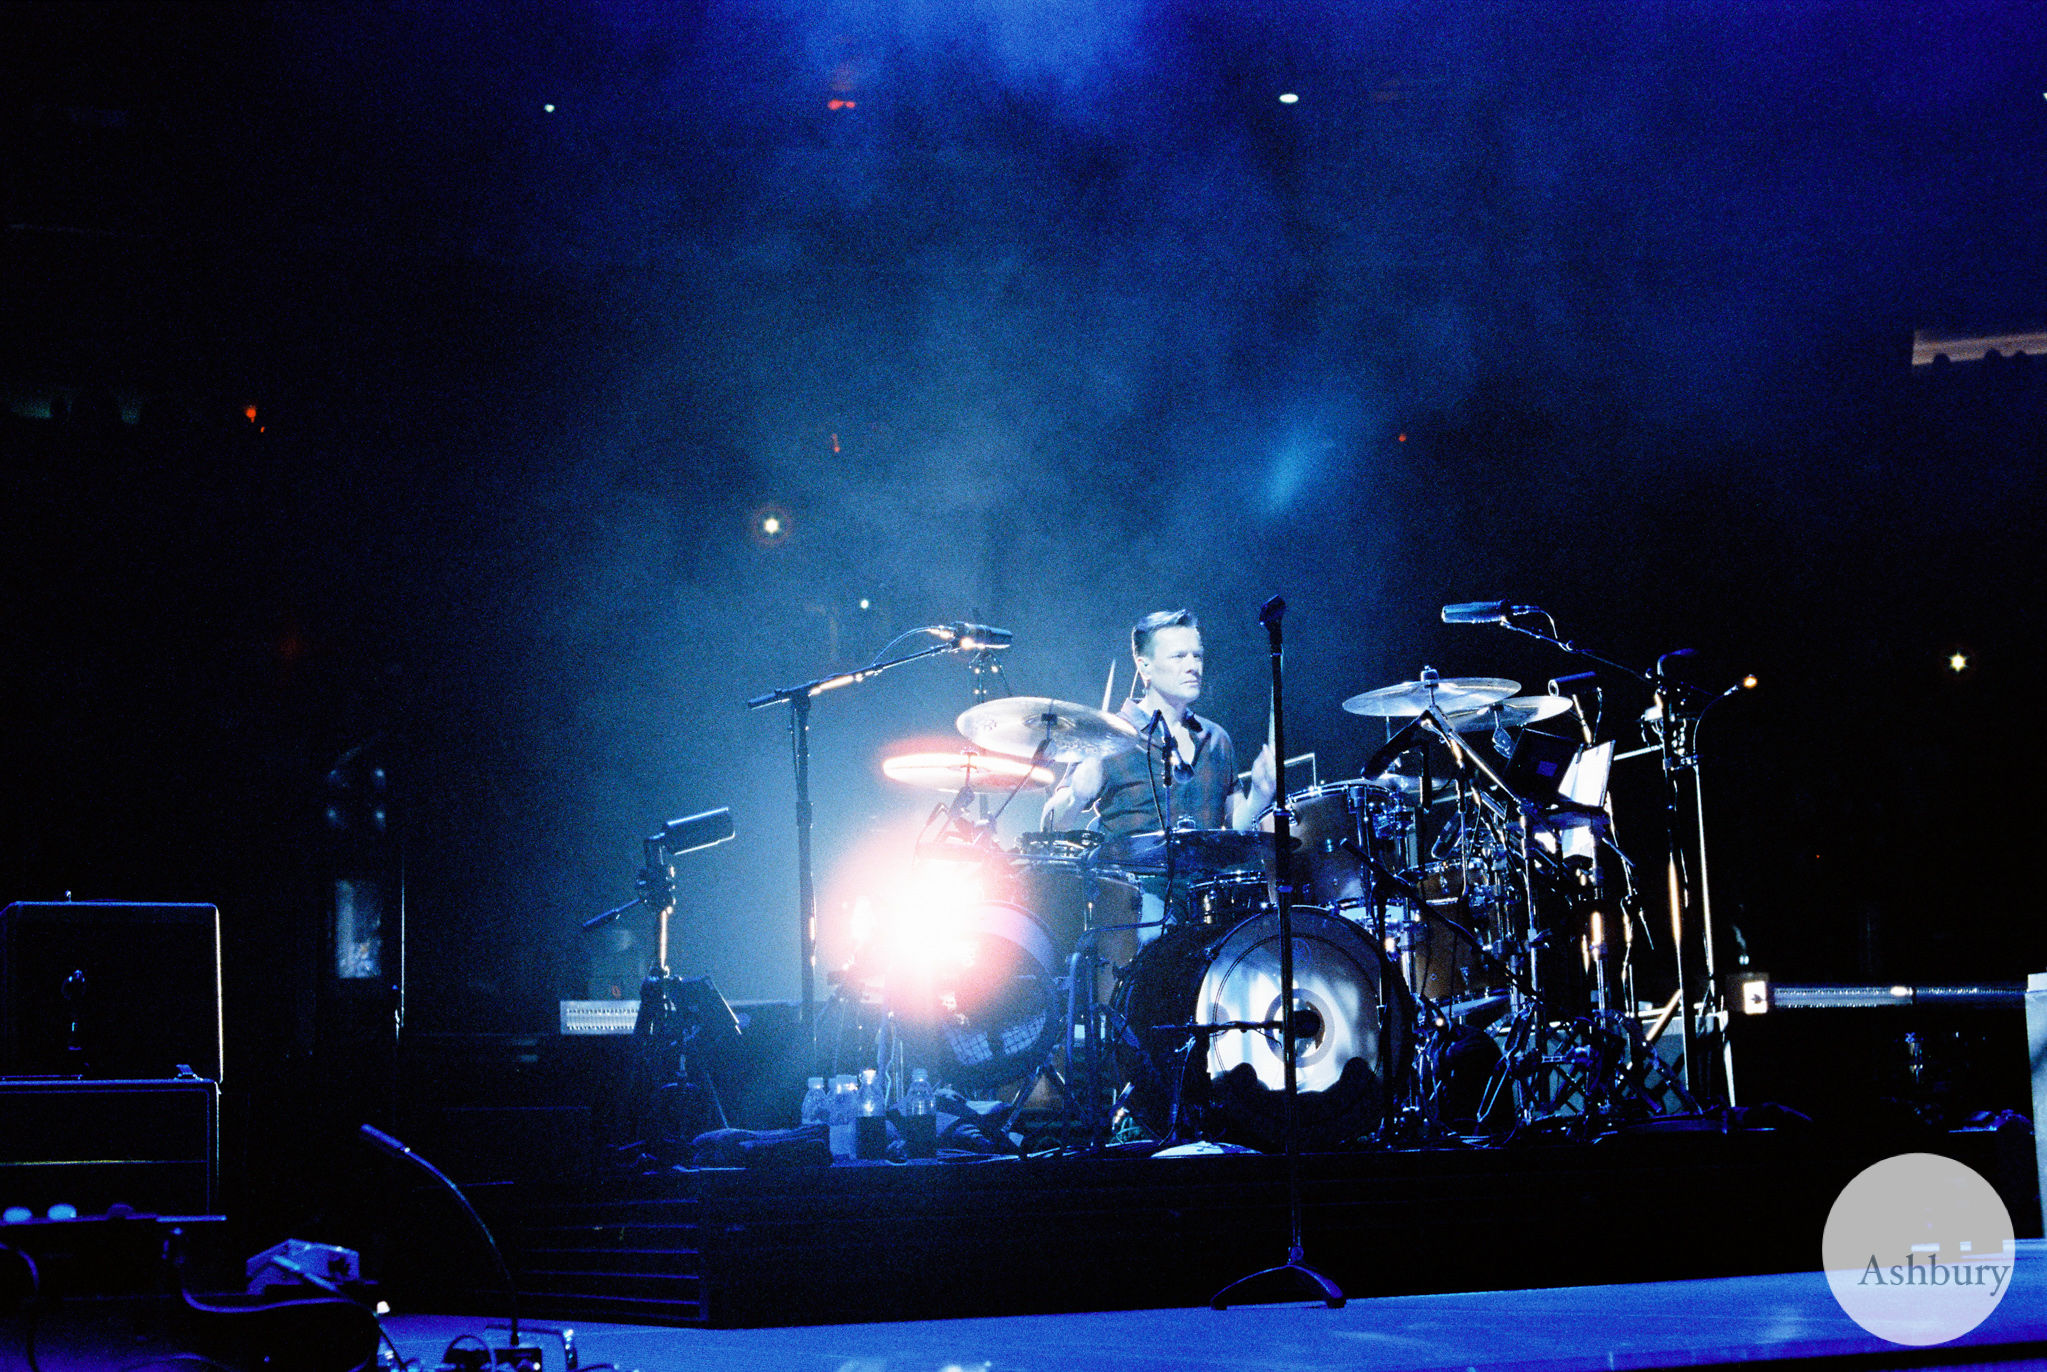 larry mullen jr of U2 u2ie tour MSG 07/19 cinestill 800 @ 1600